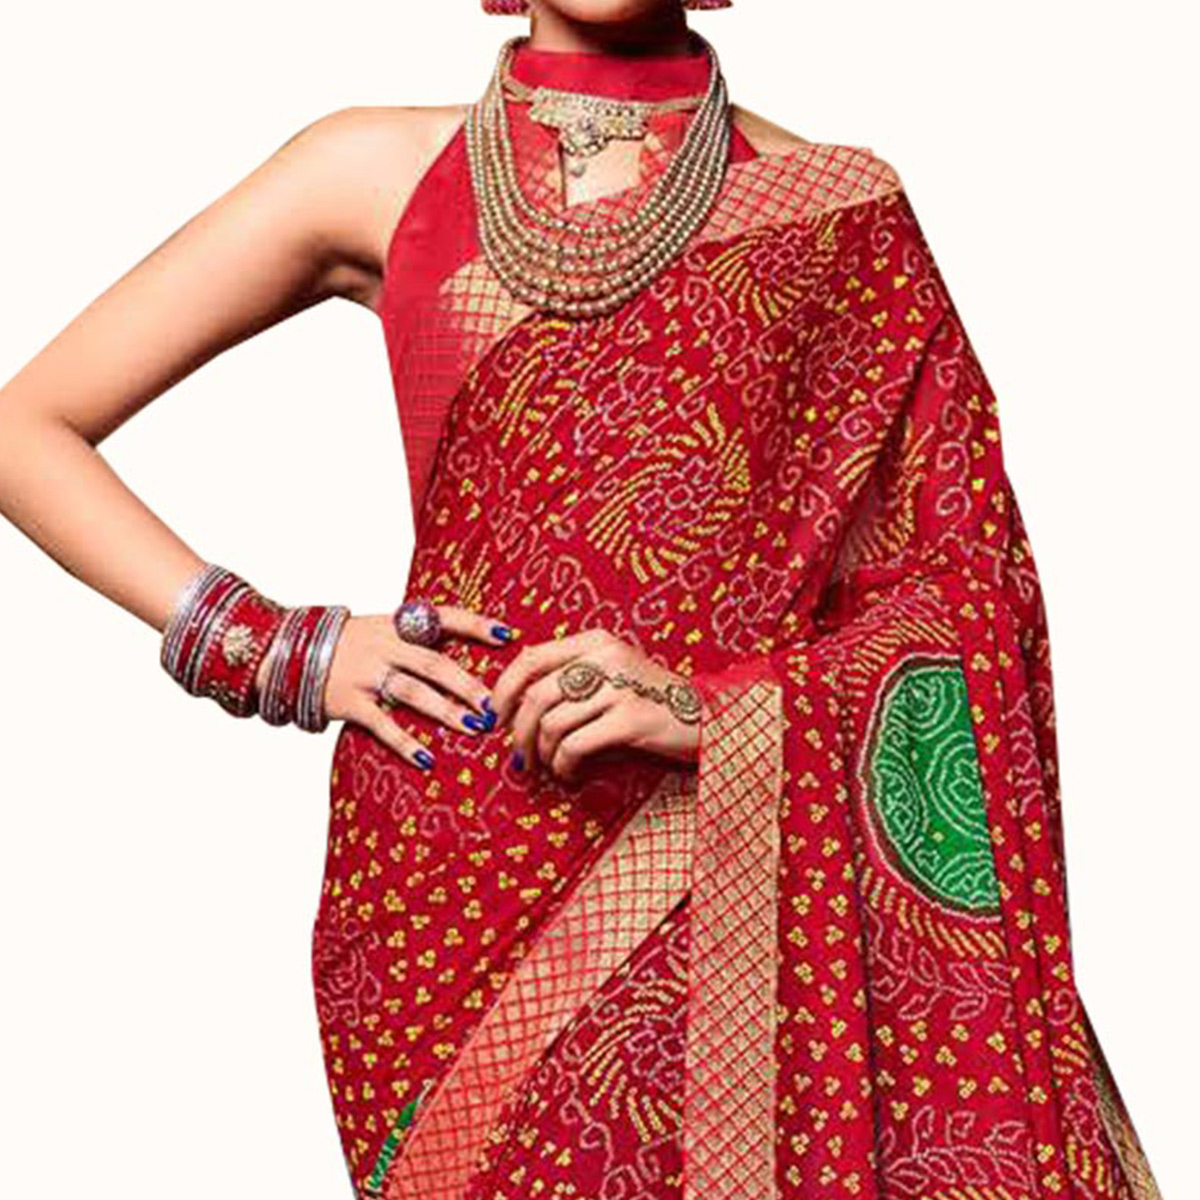 Imposing Red Colored Bandhani Printed Heavy Georgette Saree With Jacquard Lace Border